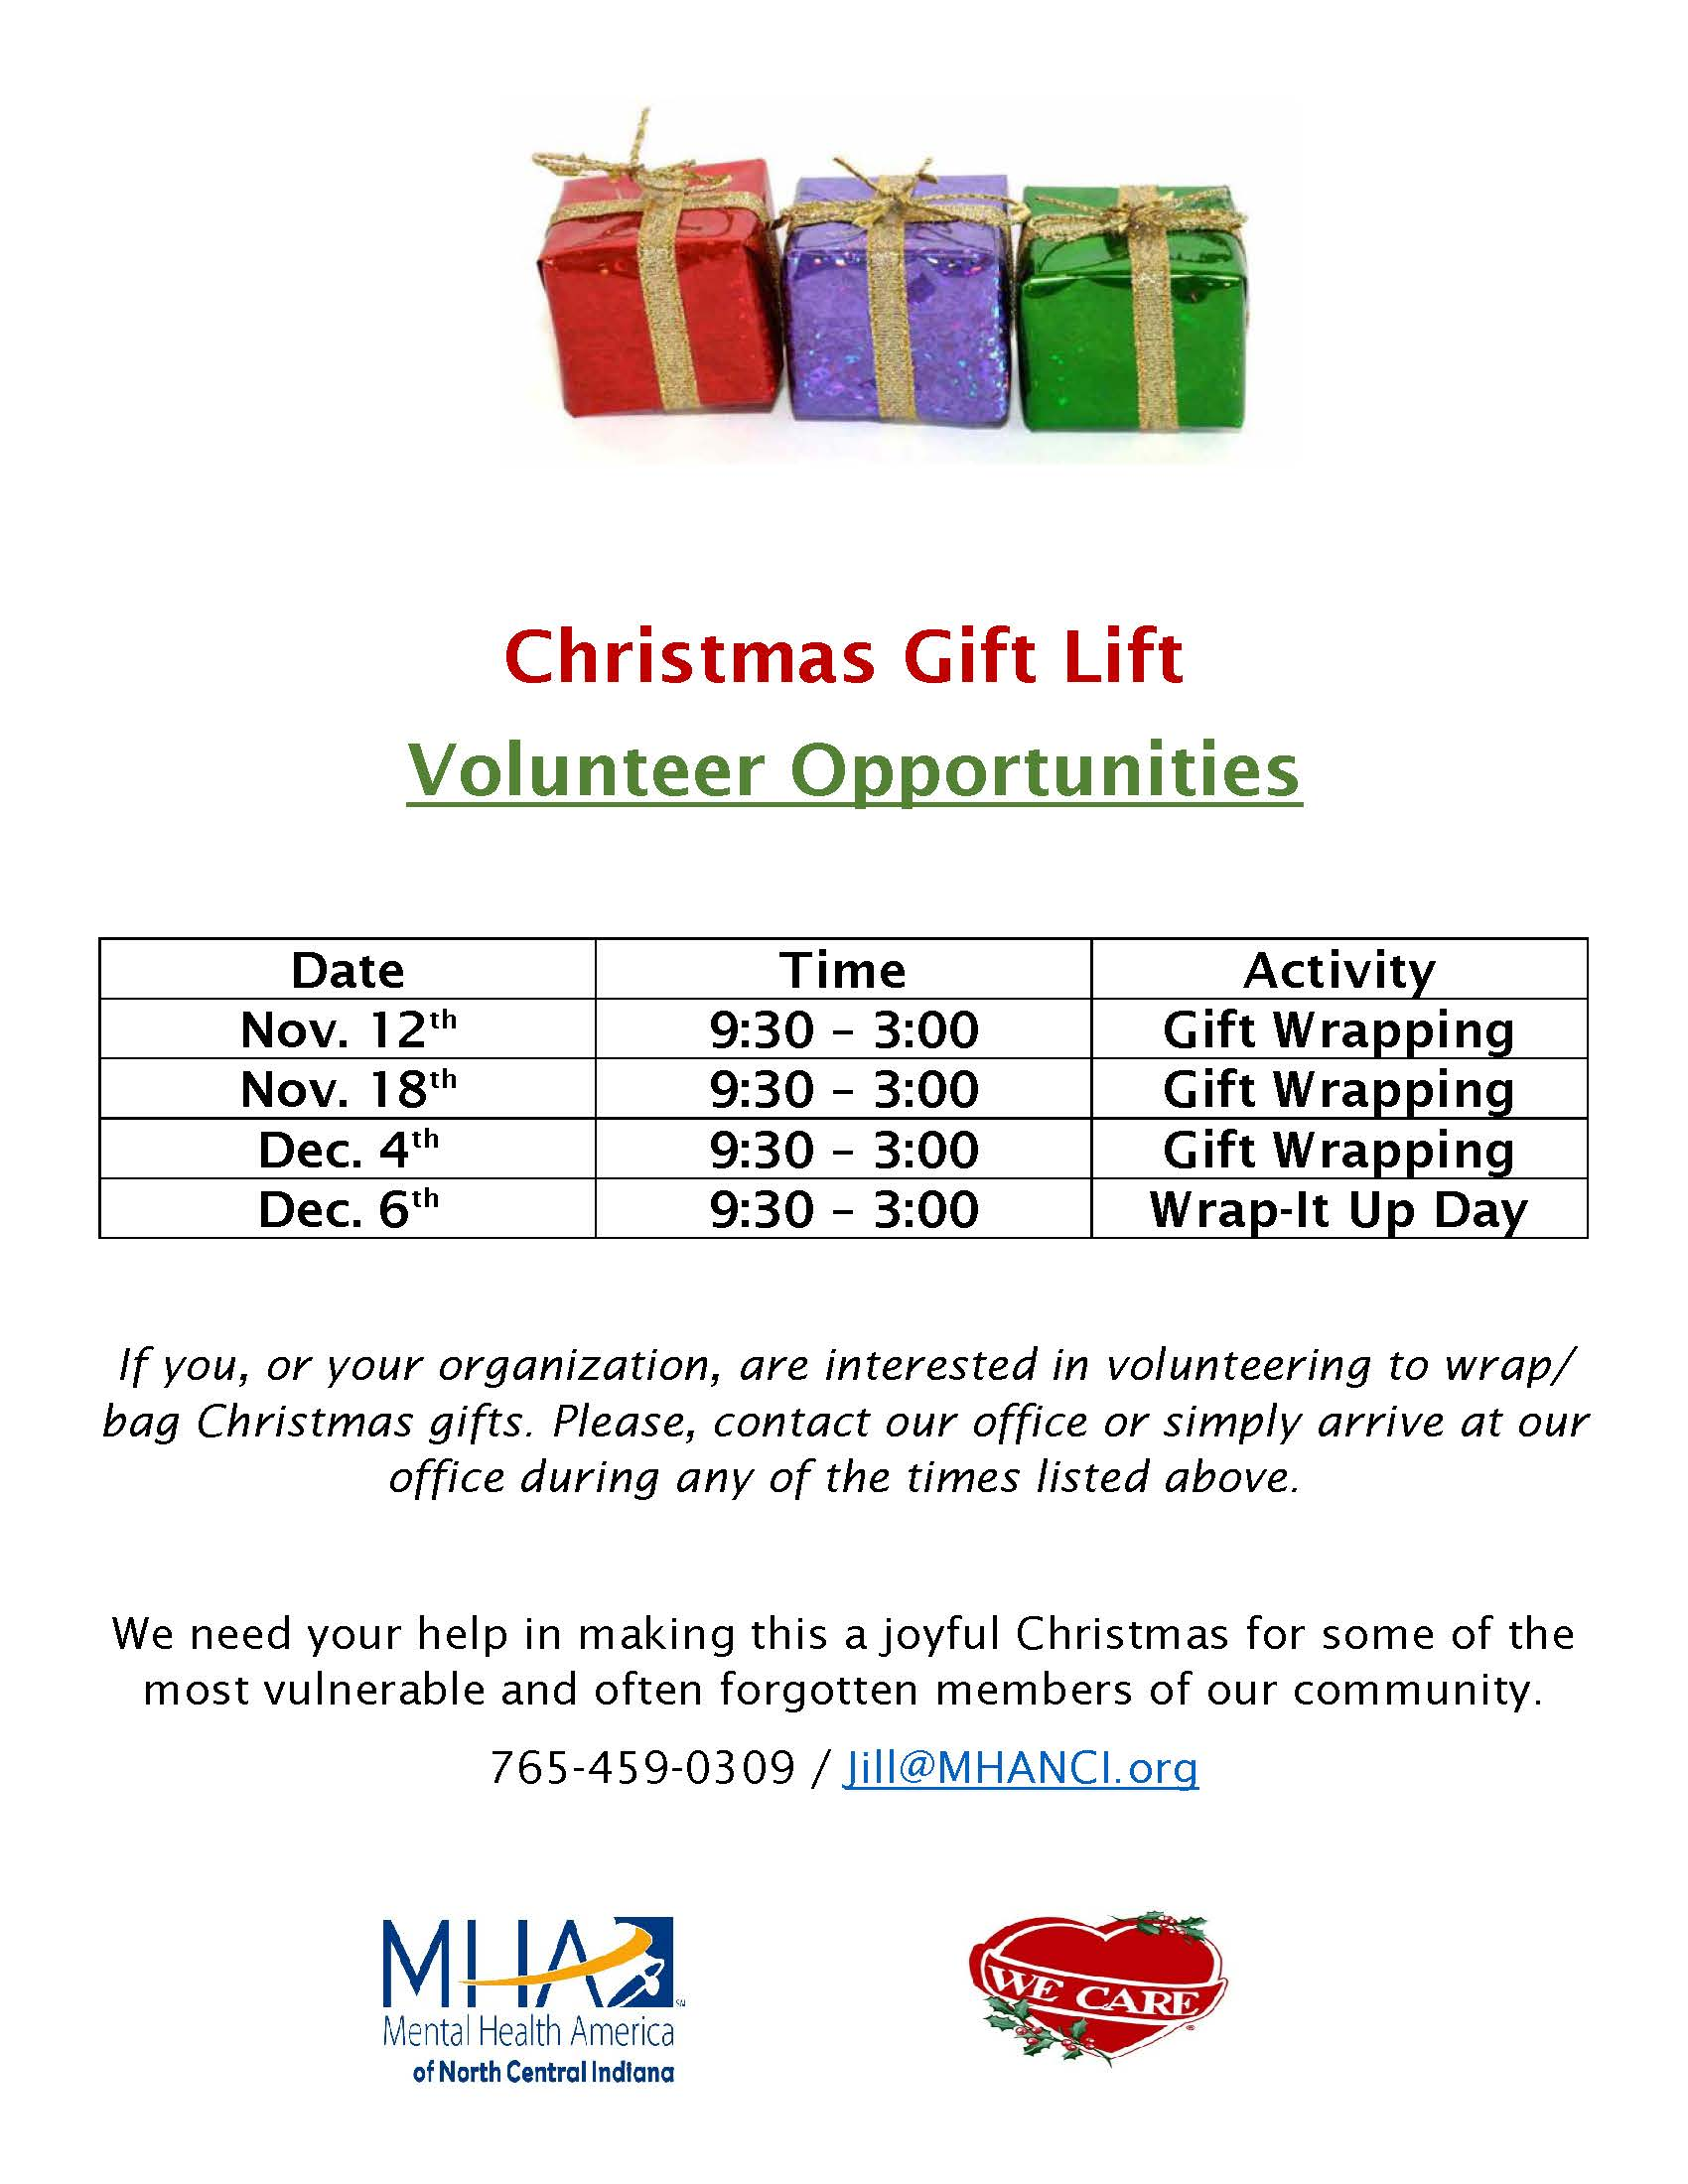 Gift Lift Volunteer Opportunities